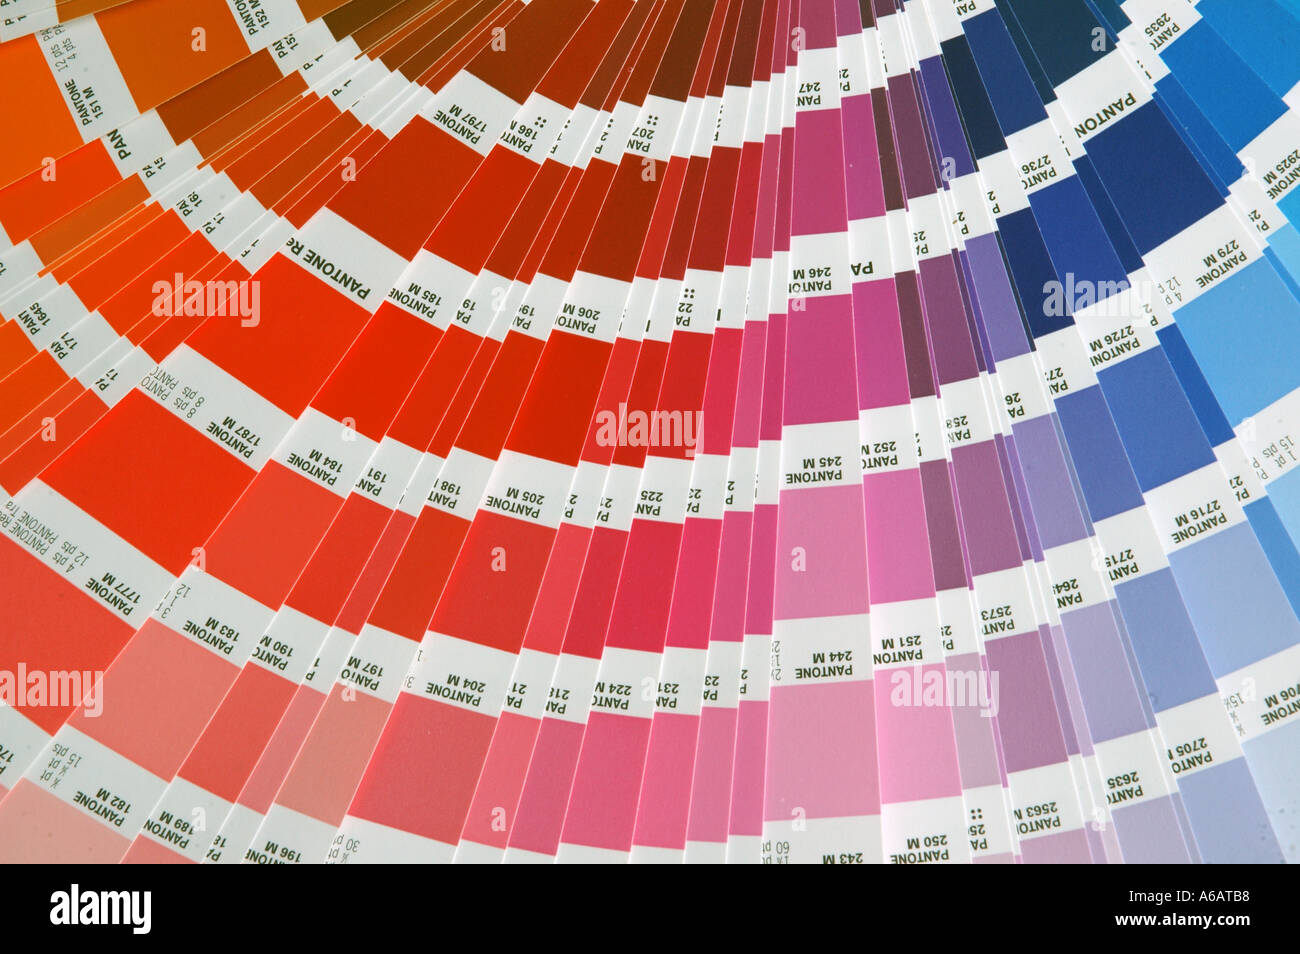 Pantone printing industry standard colour charts dsca 2147